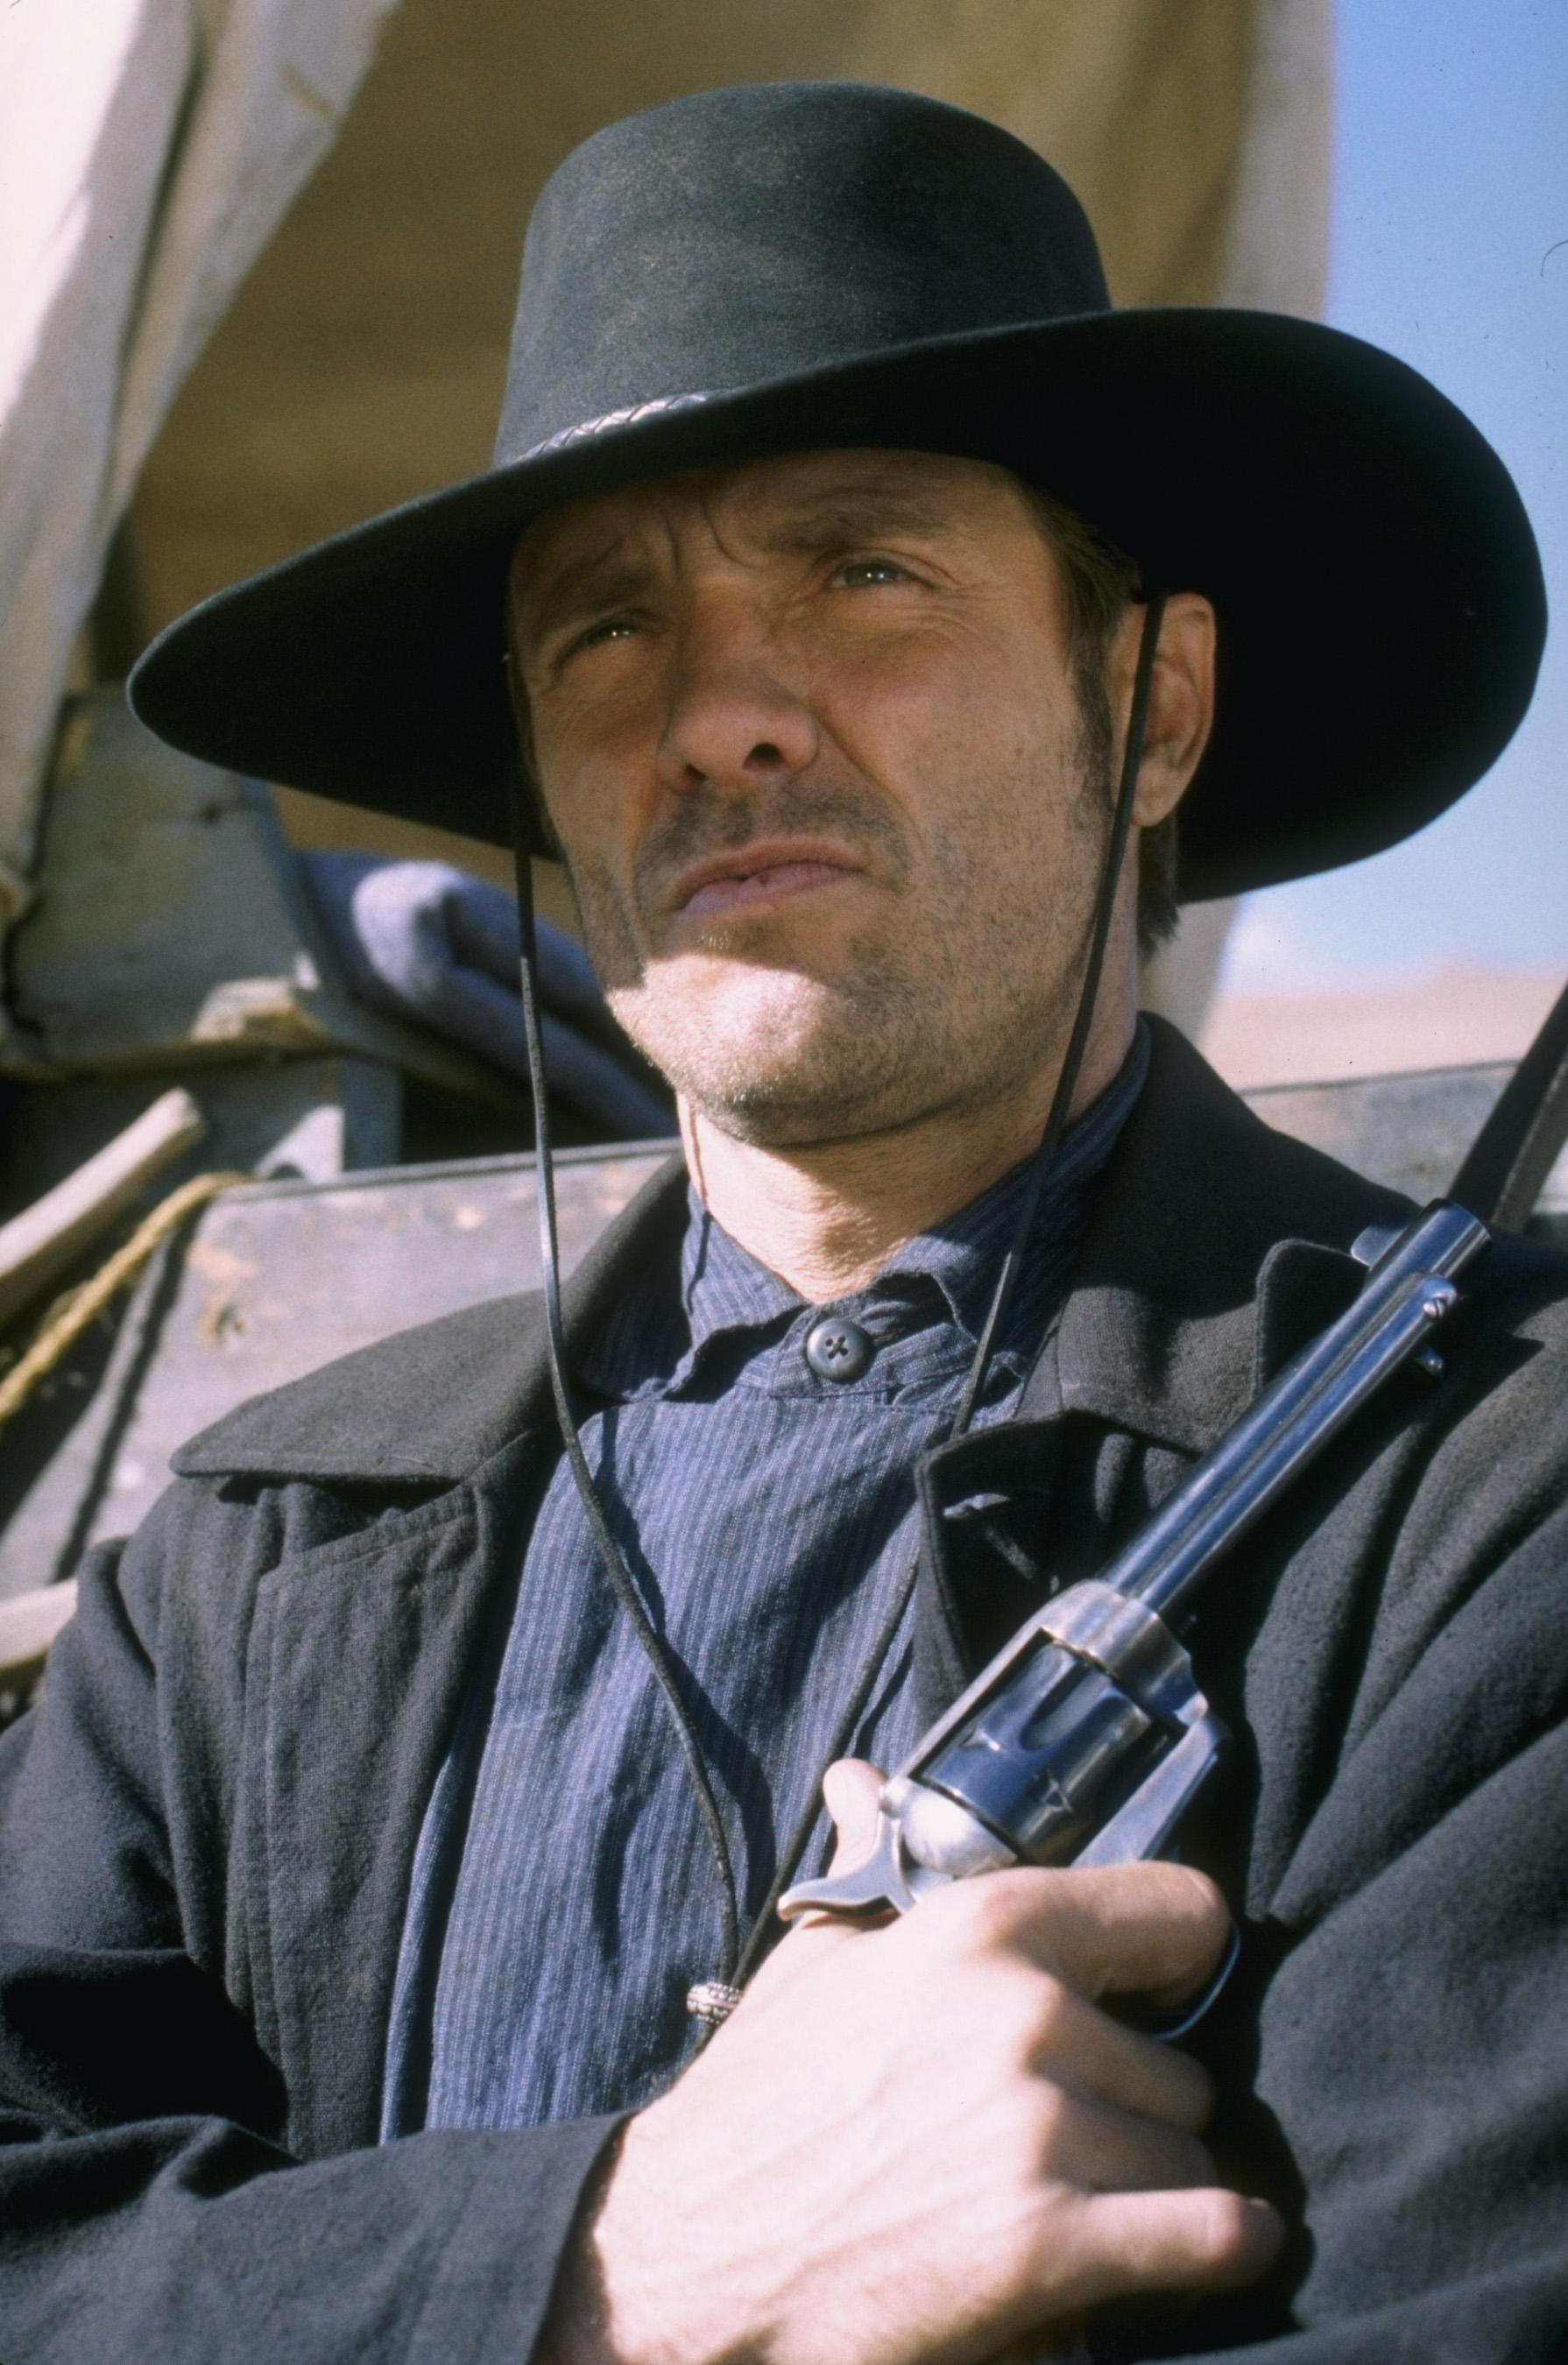 Magnificent 7 - Michael Biehn as Chris Larabee